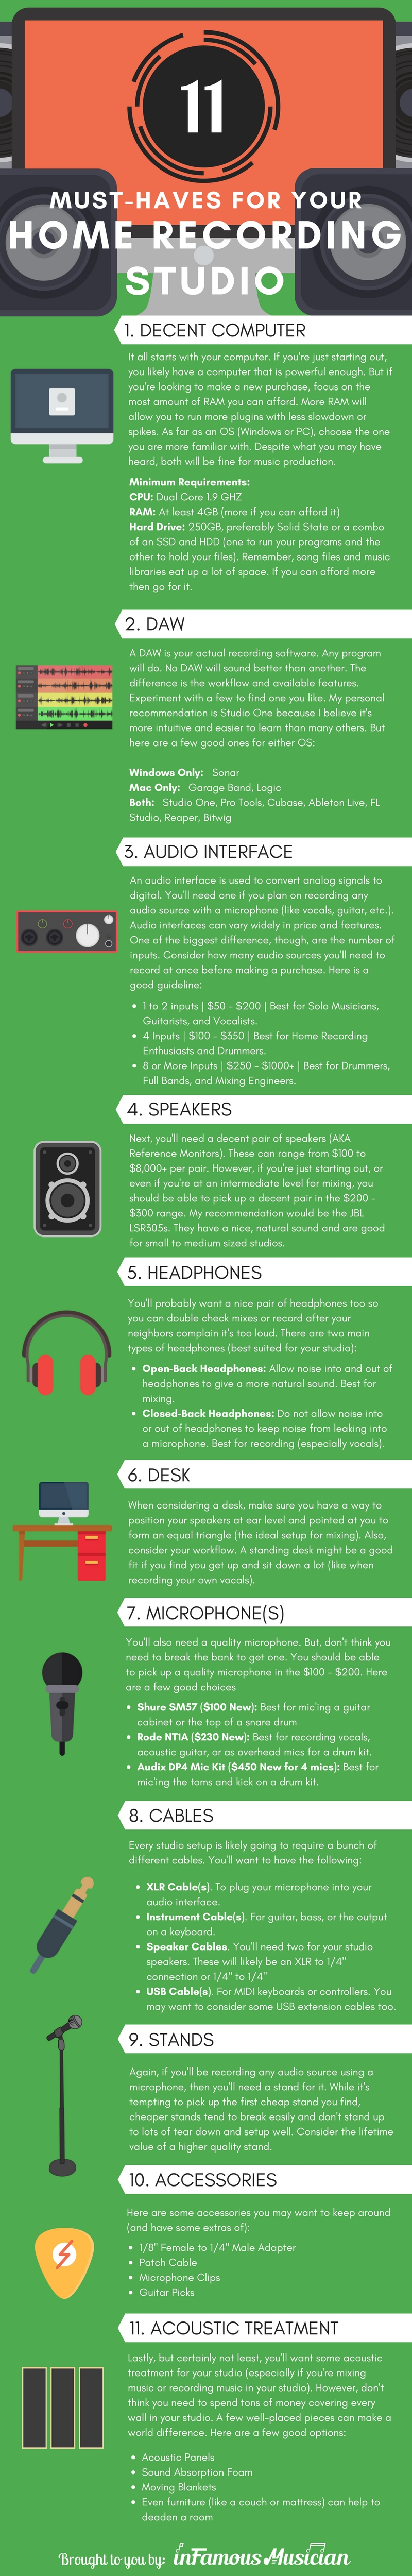 Home Recording Studio Equipment [Infographic]